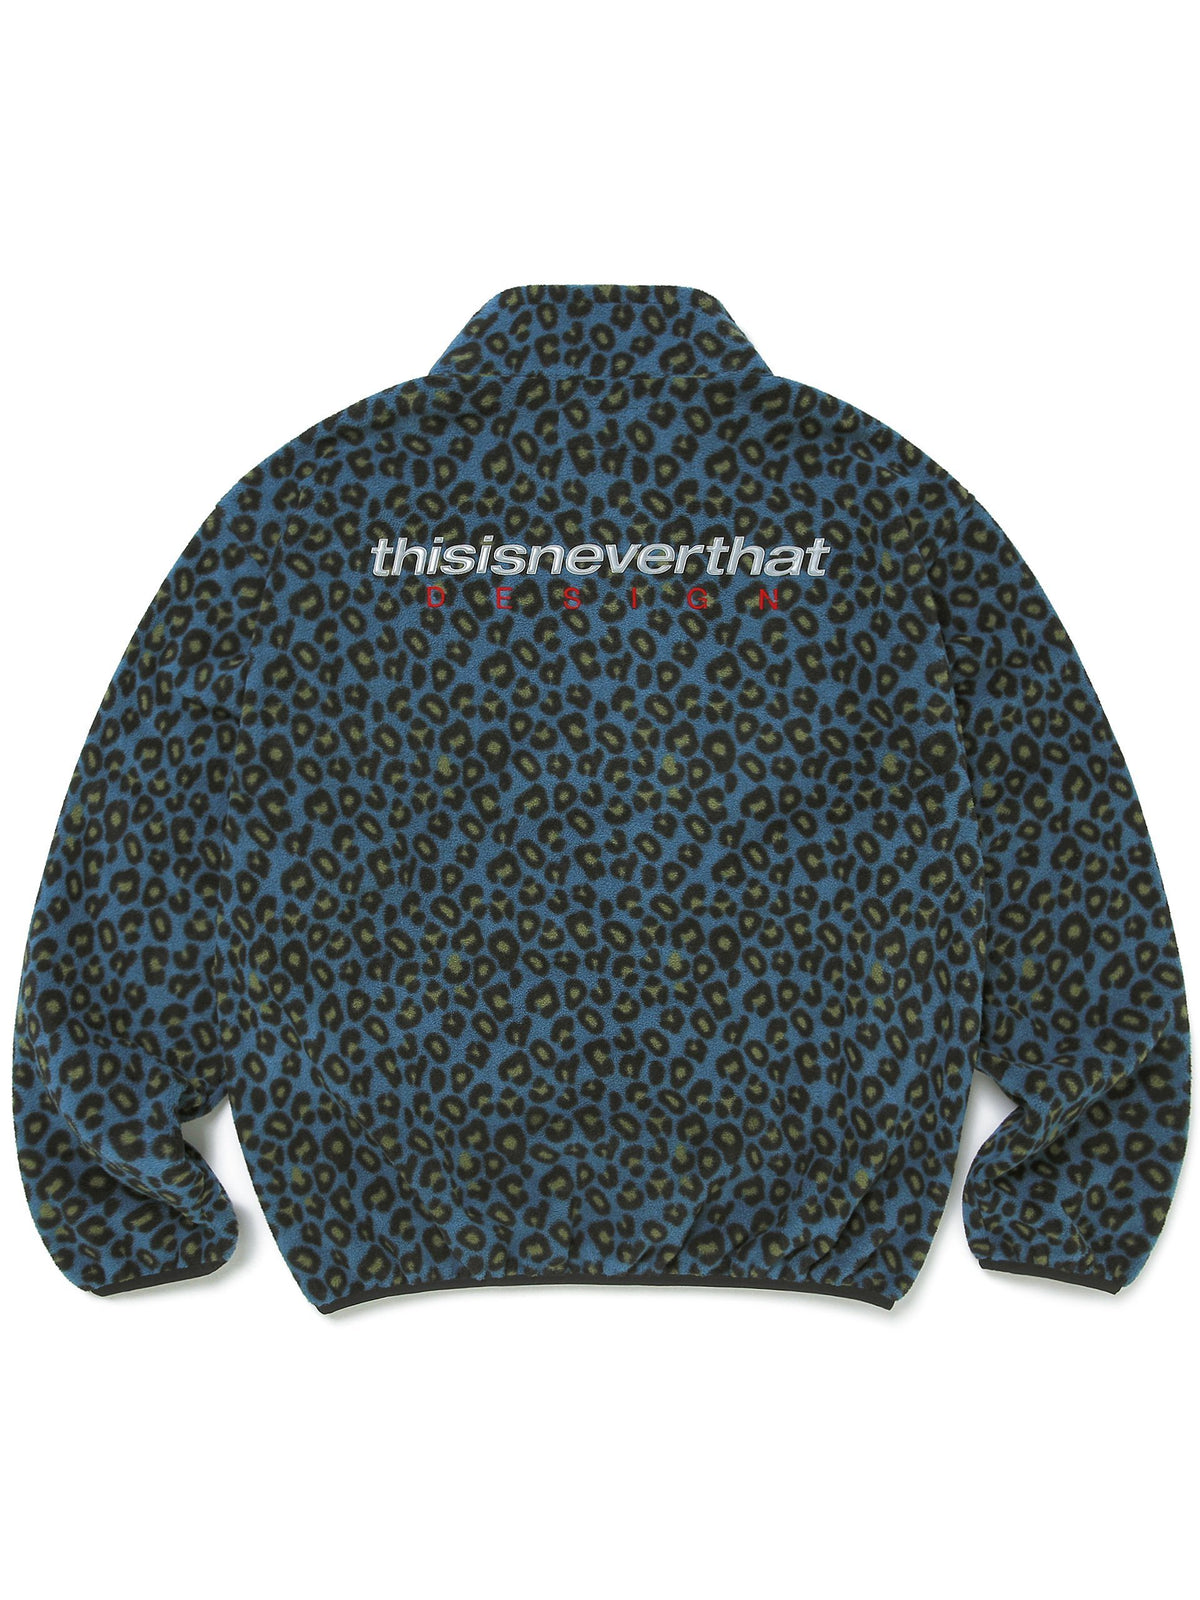 DSN Fleece Jacket - thisisneverthat